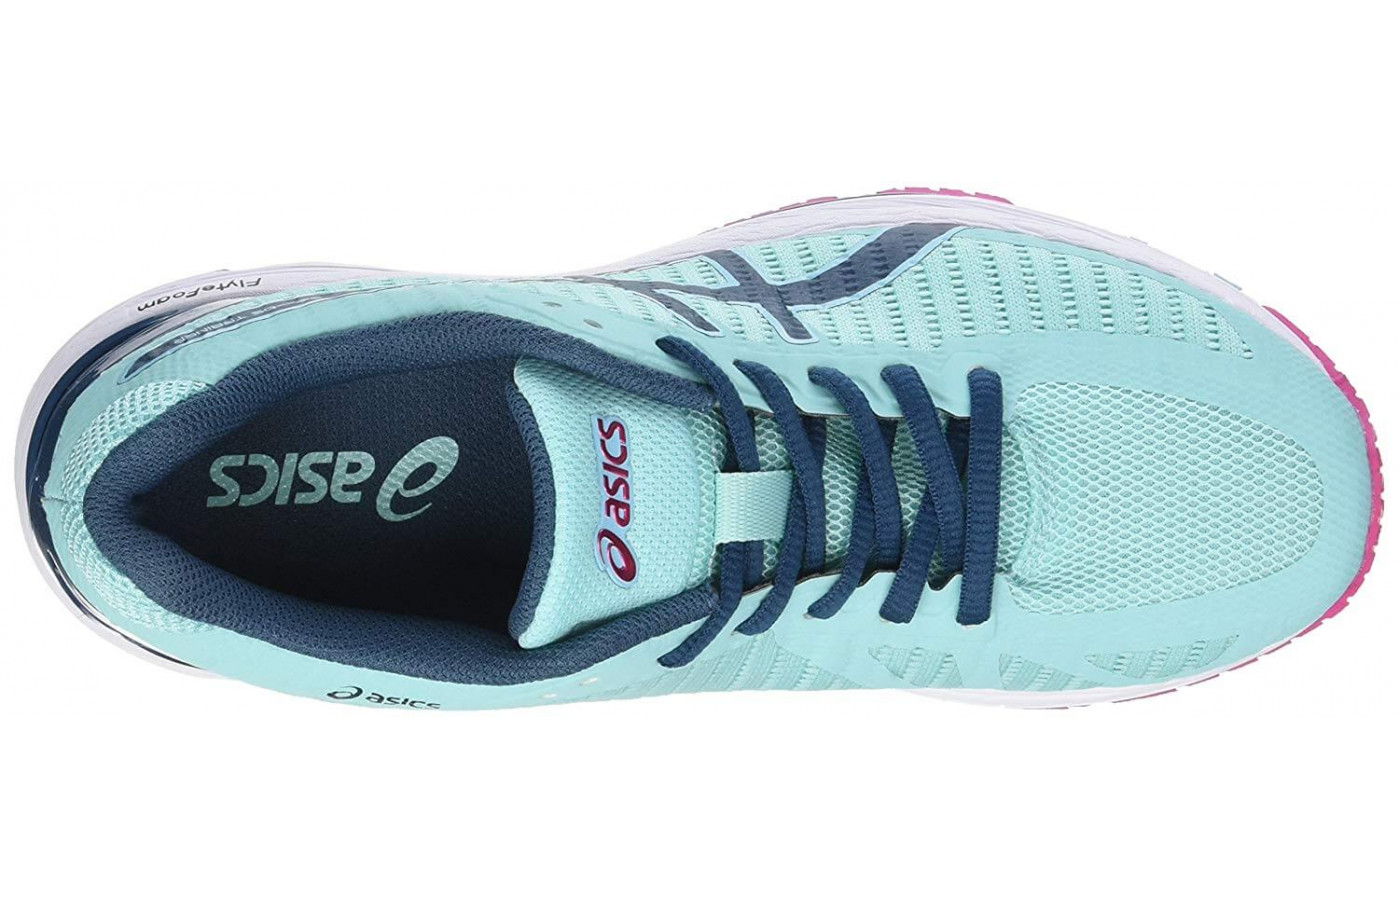 Asics Gel DS Trainer 23 top lacing system